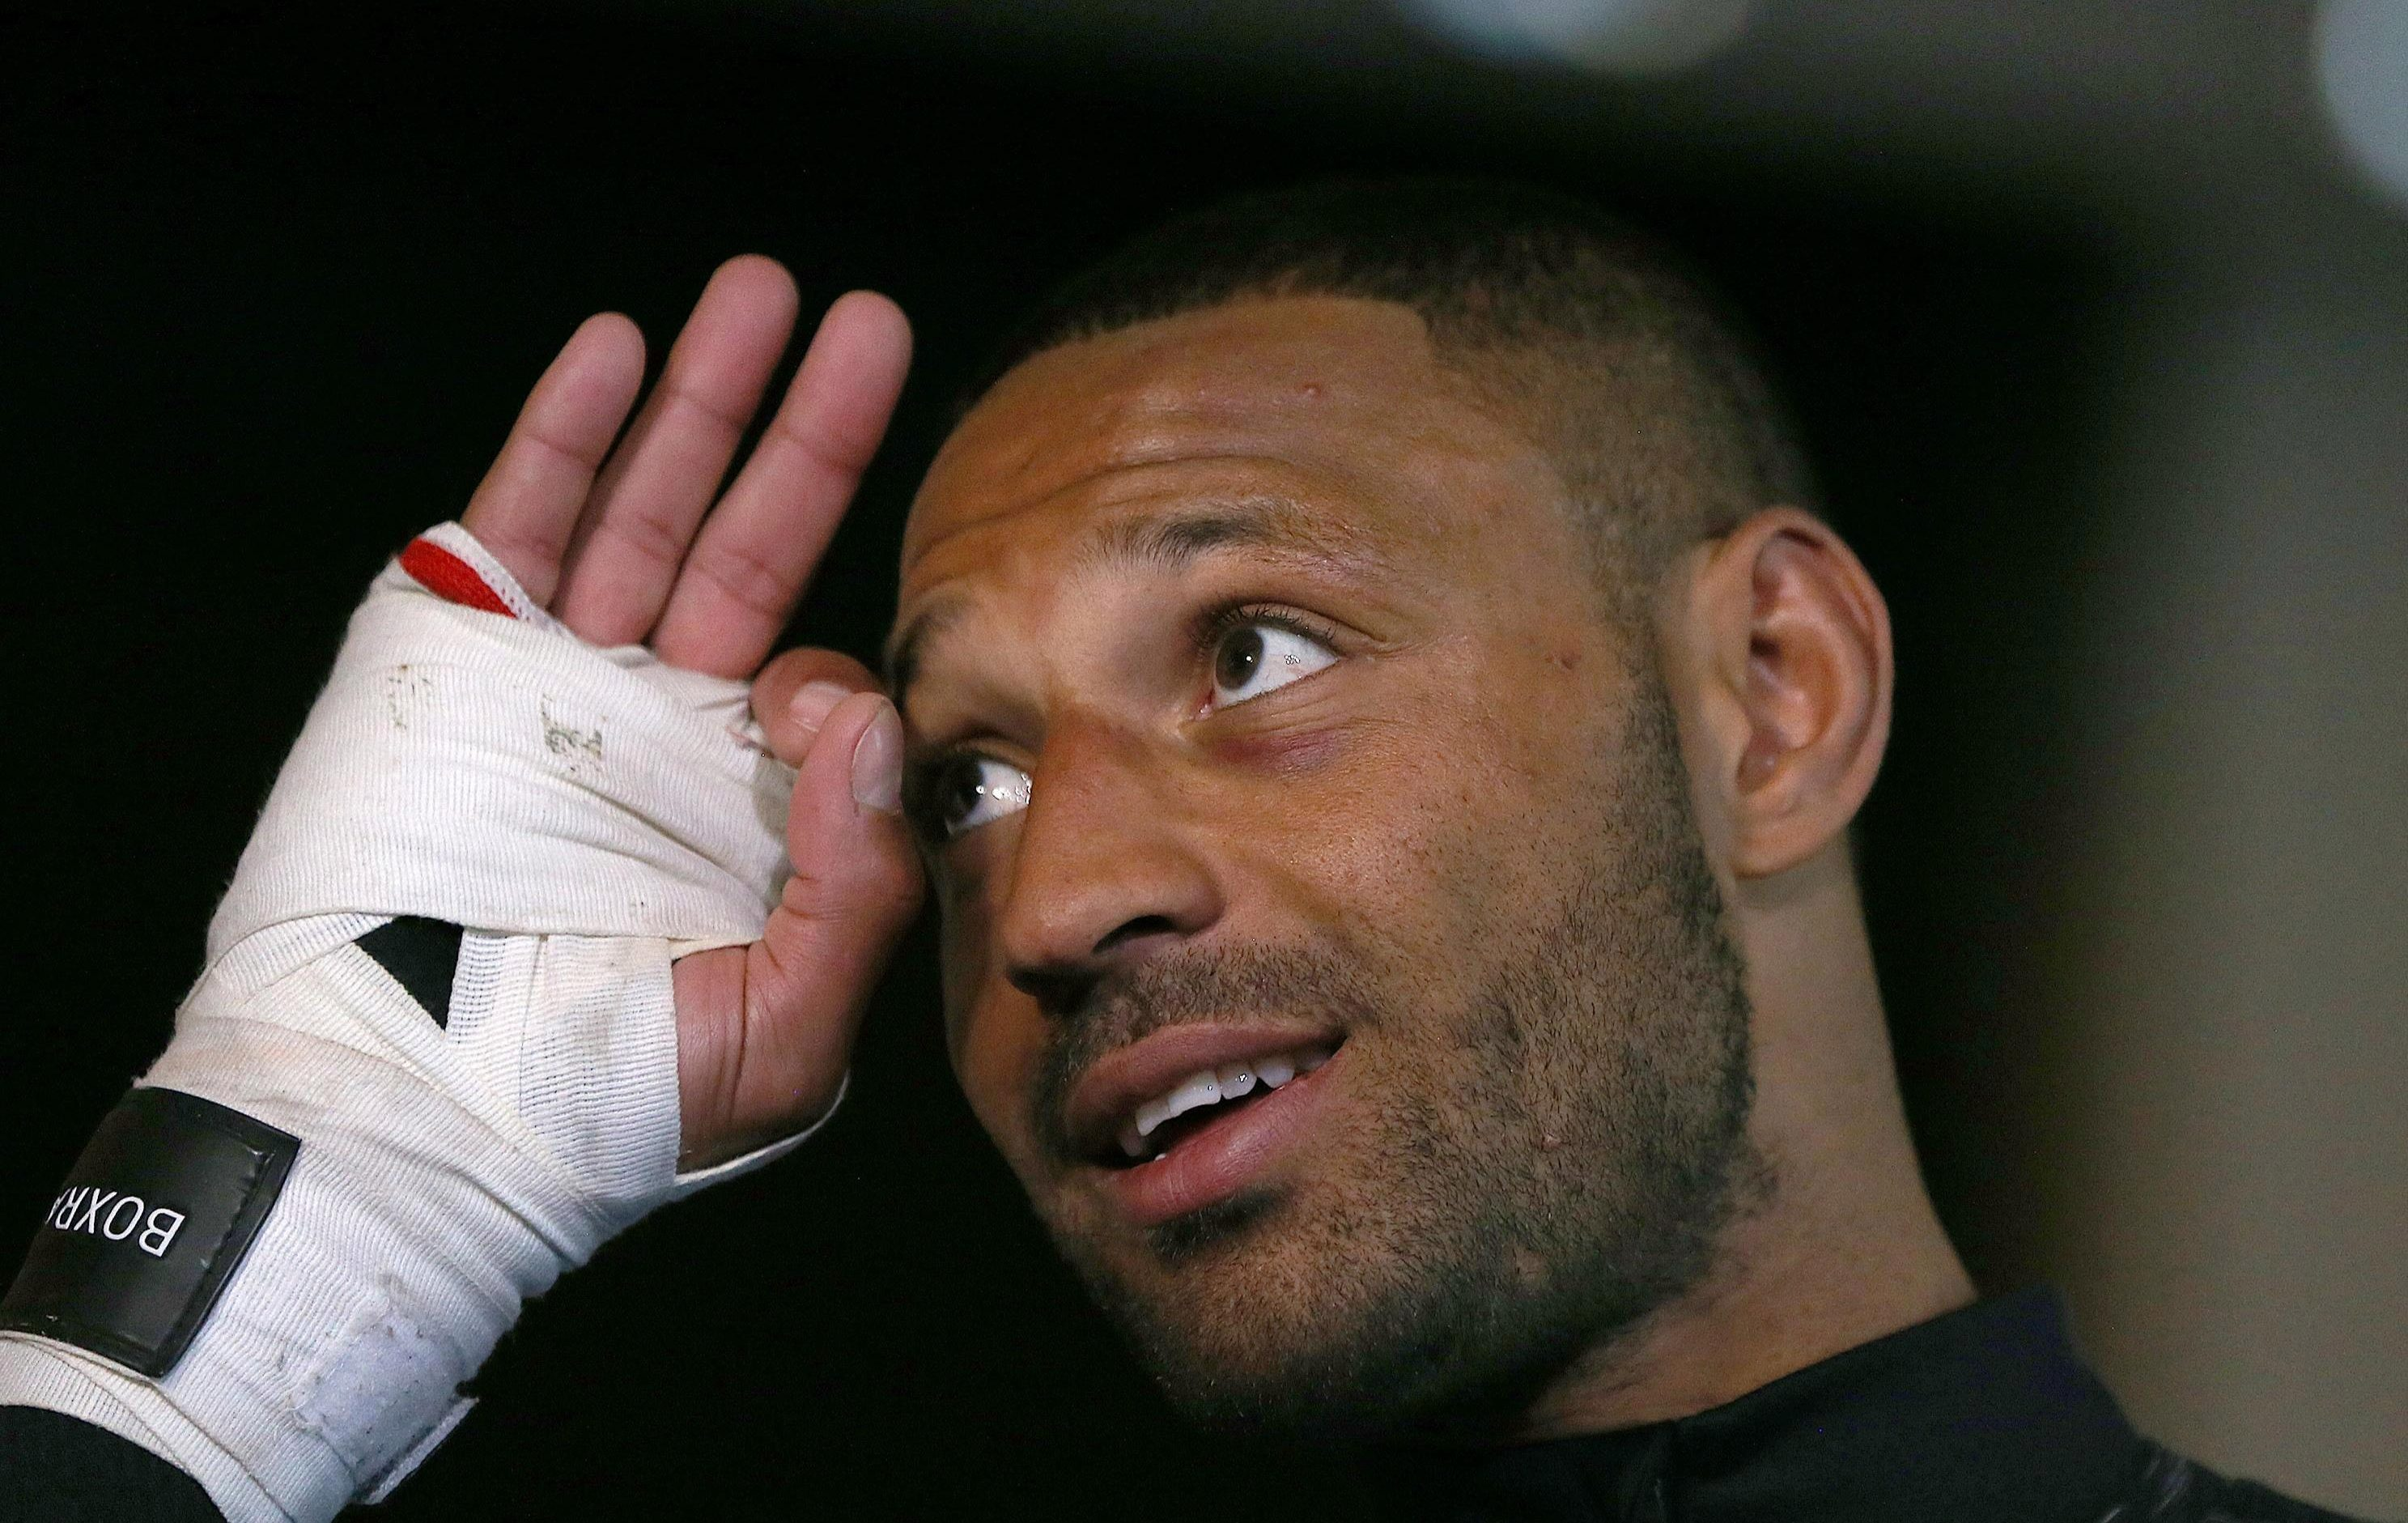 Kell Brook has suffered an ankle injury